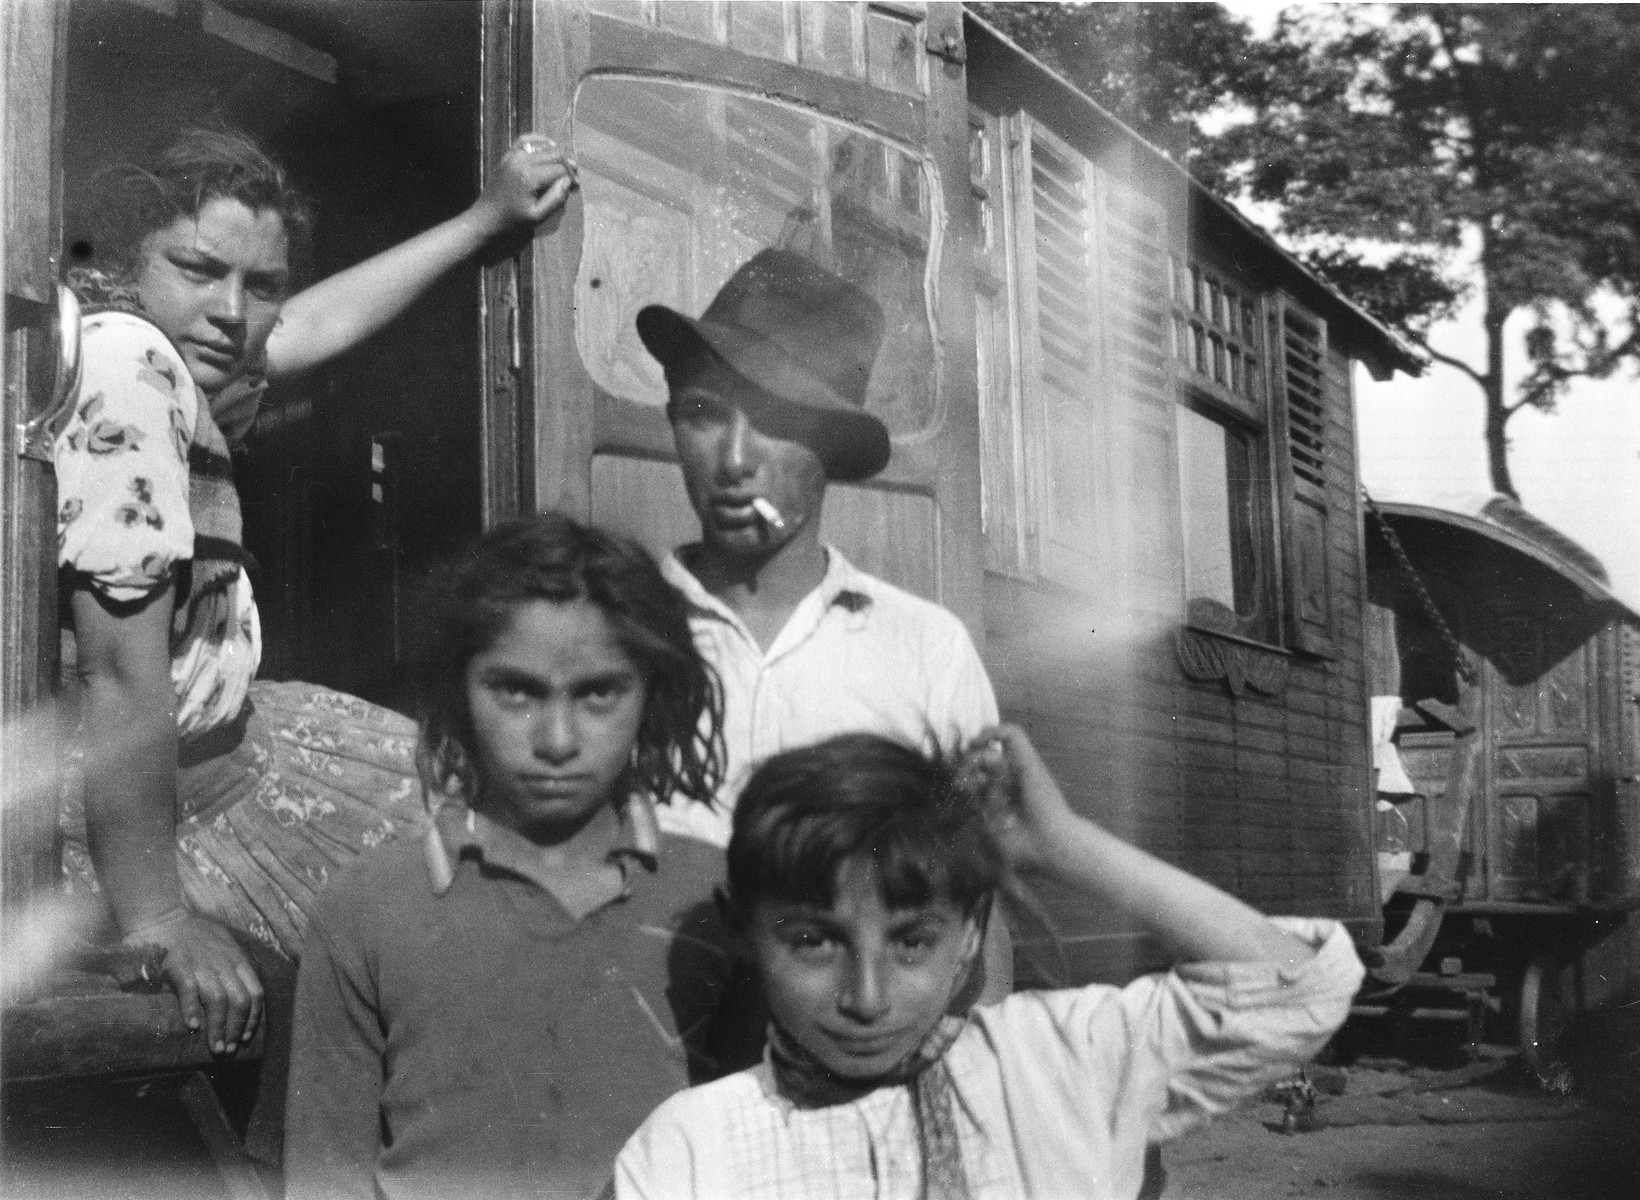 A Romani (Gypsy) family.  A boy, a girl, and a young man stand outside the caravan, with a young woman seated in the doorway.